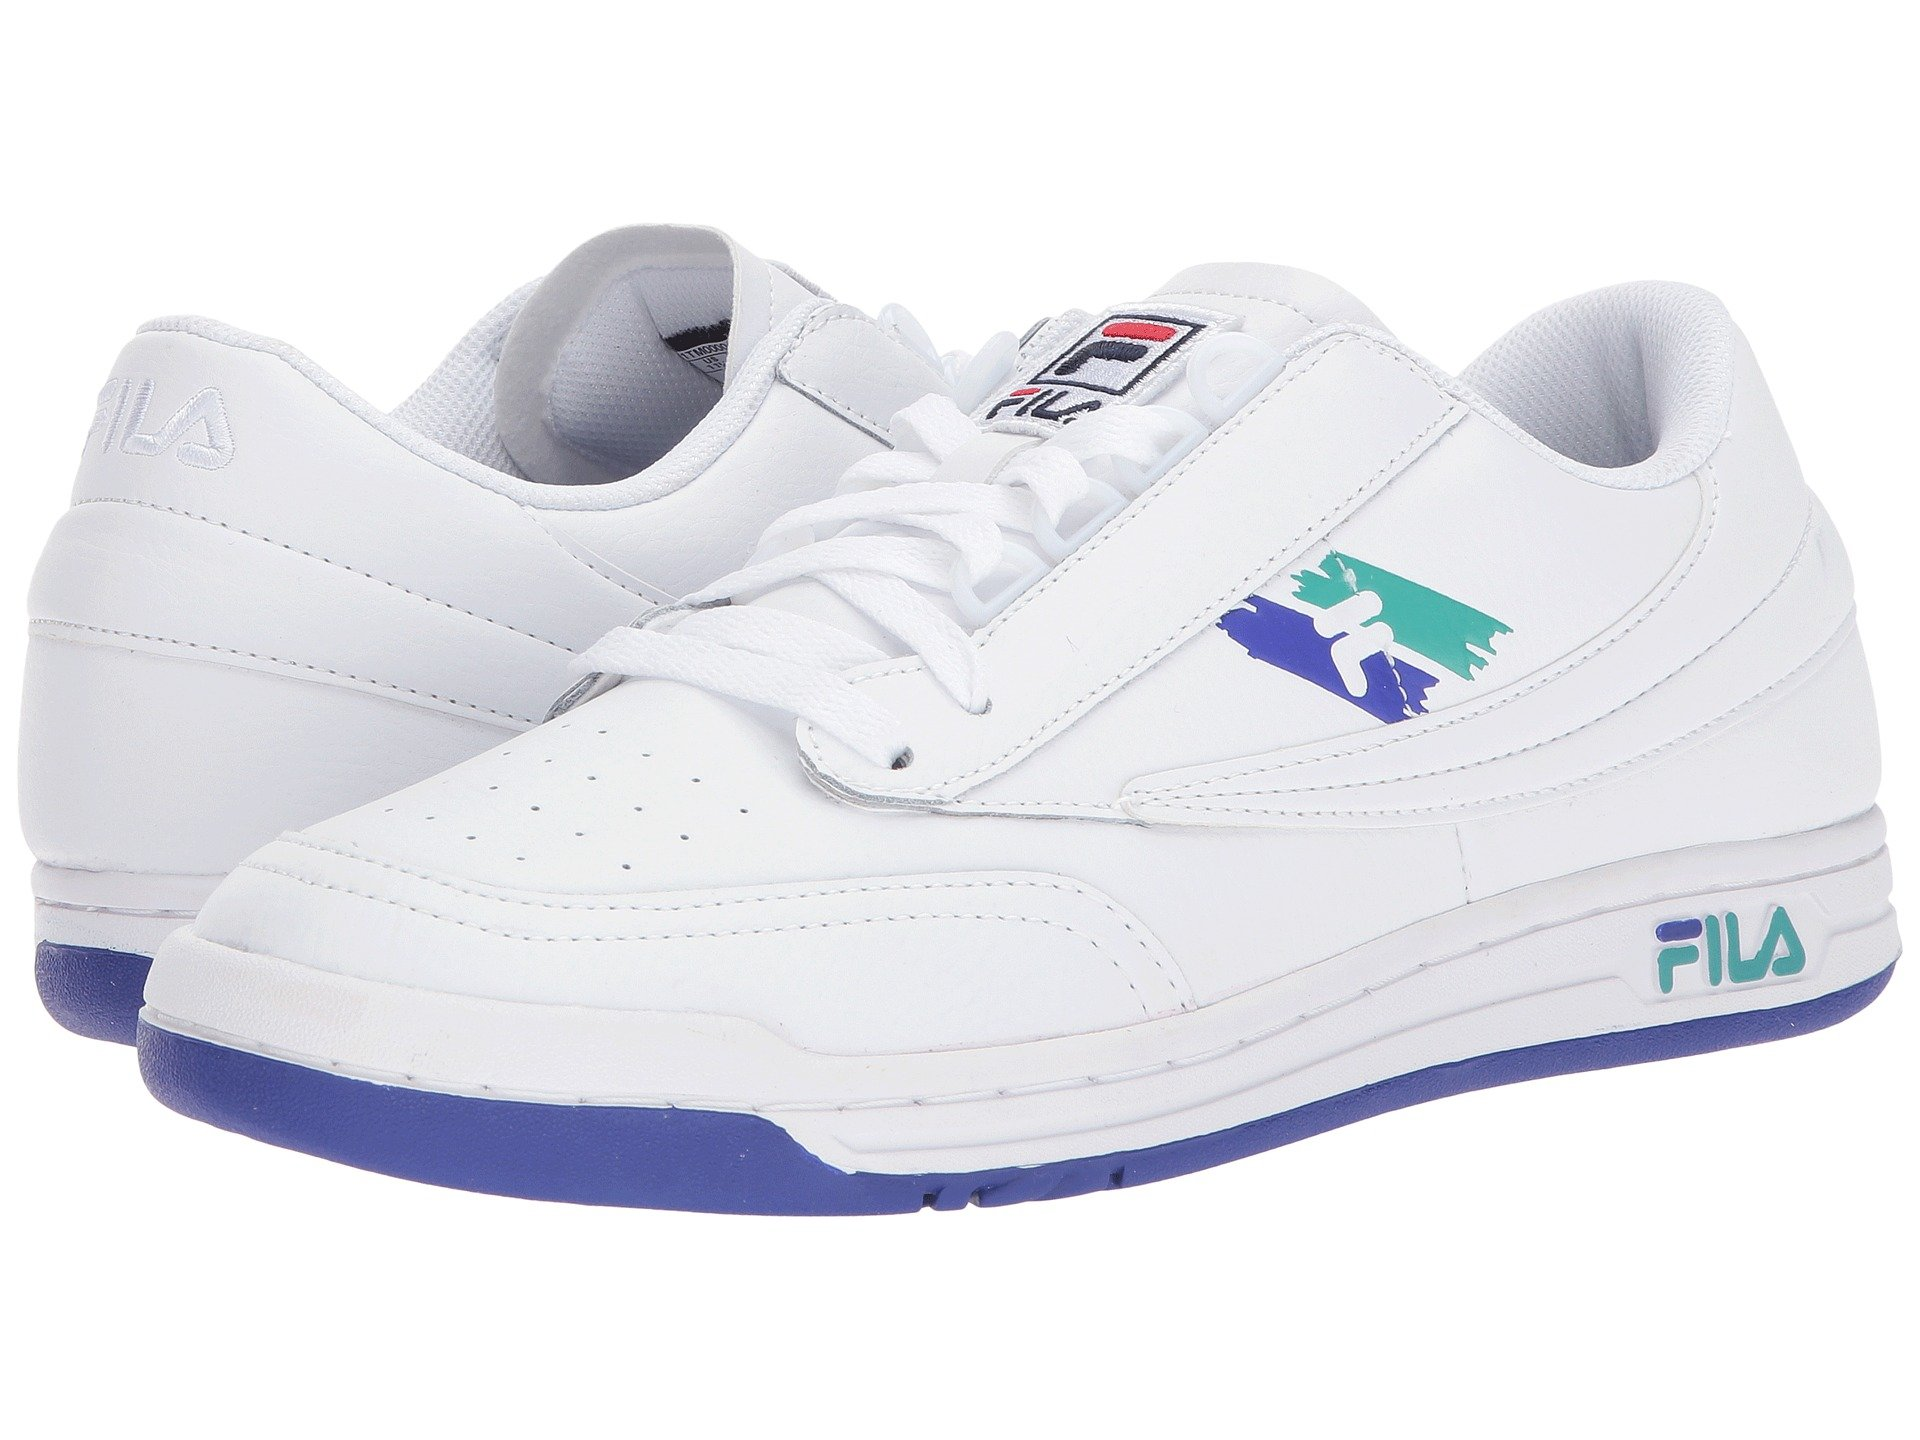 Fila Sneakers & Athletic Shoes